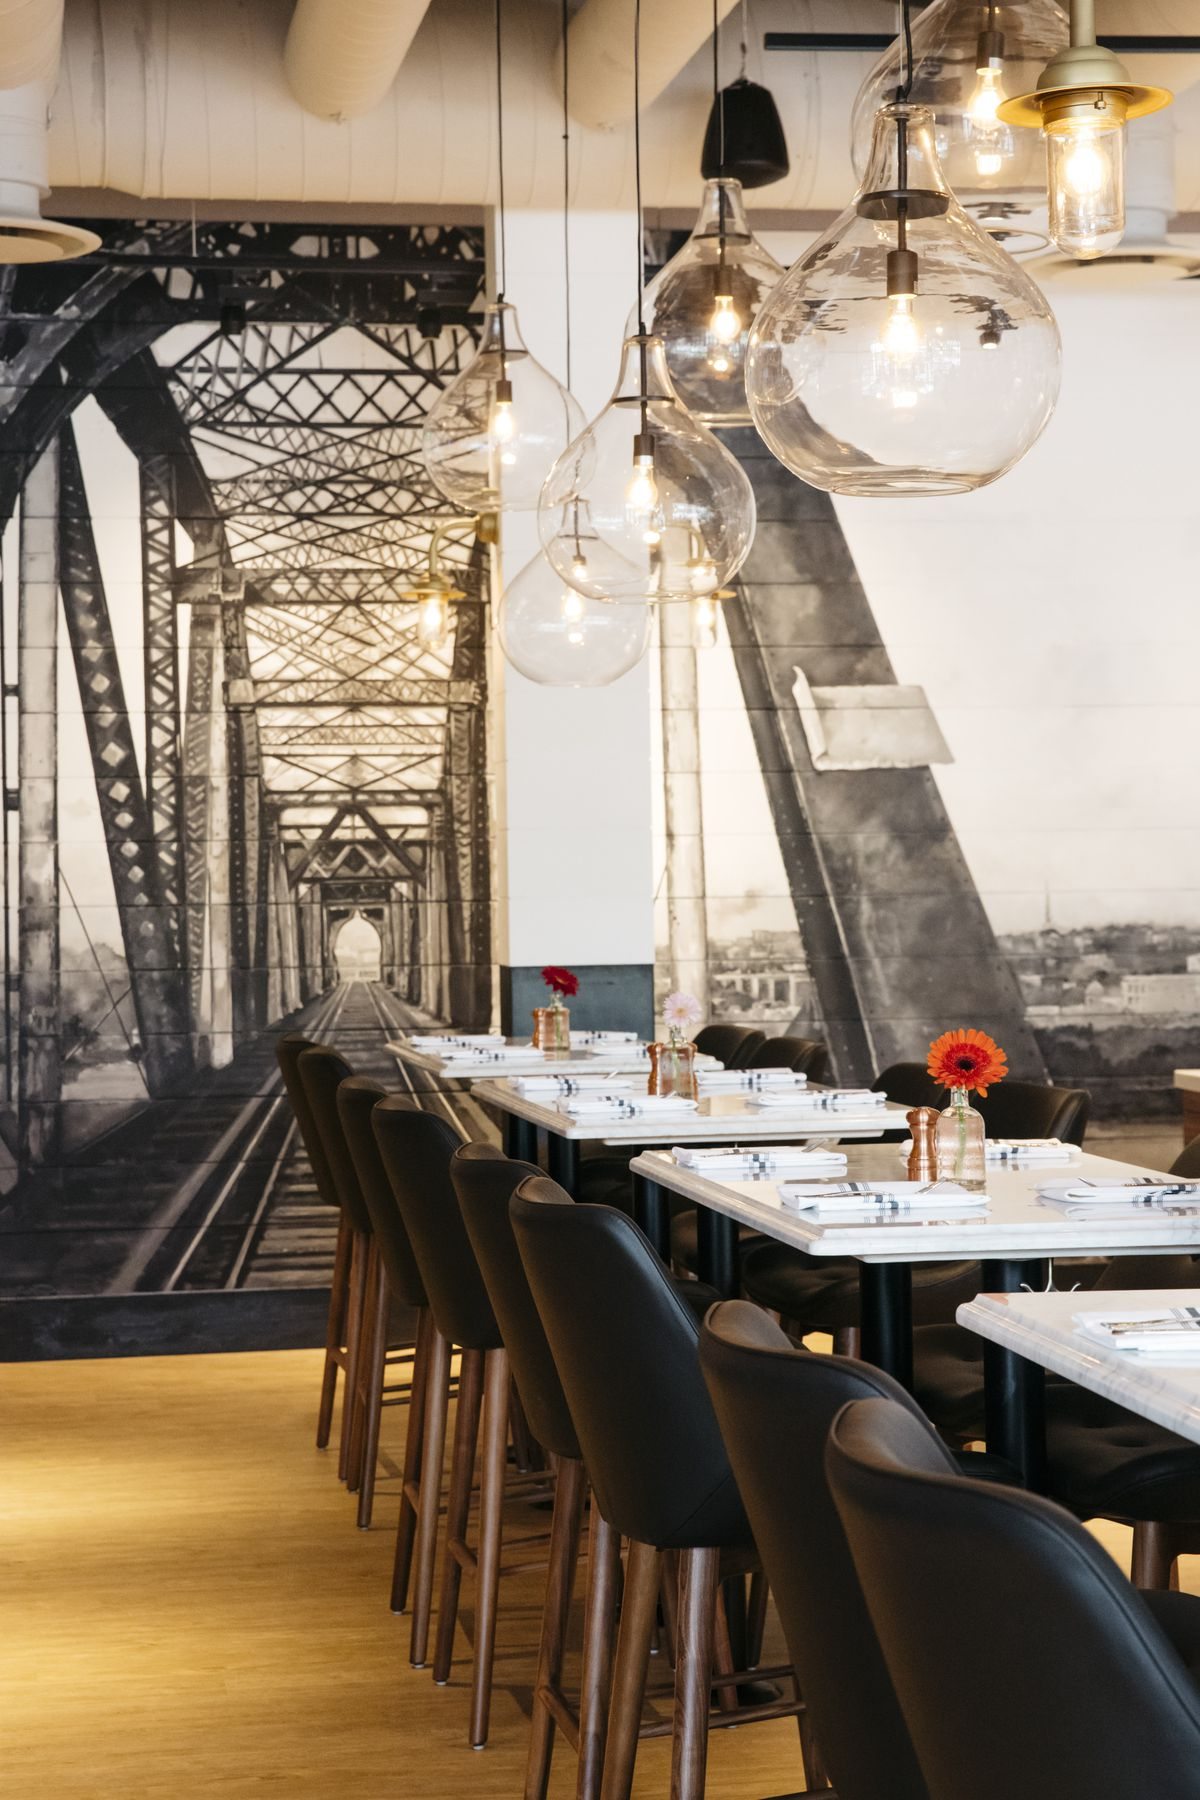 Bar height tables, black chairs, and a painted mural of Nashville's Cumberland Swing bridge